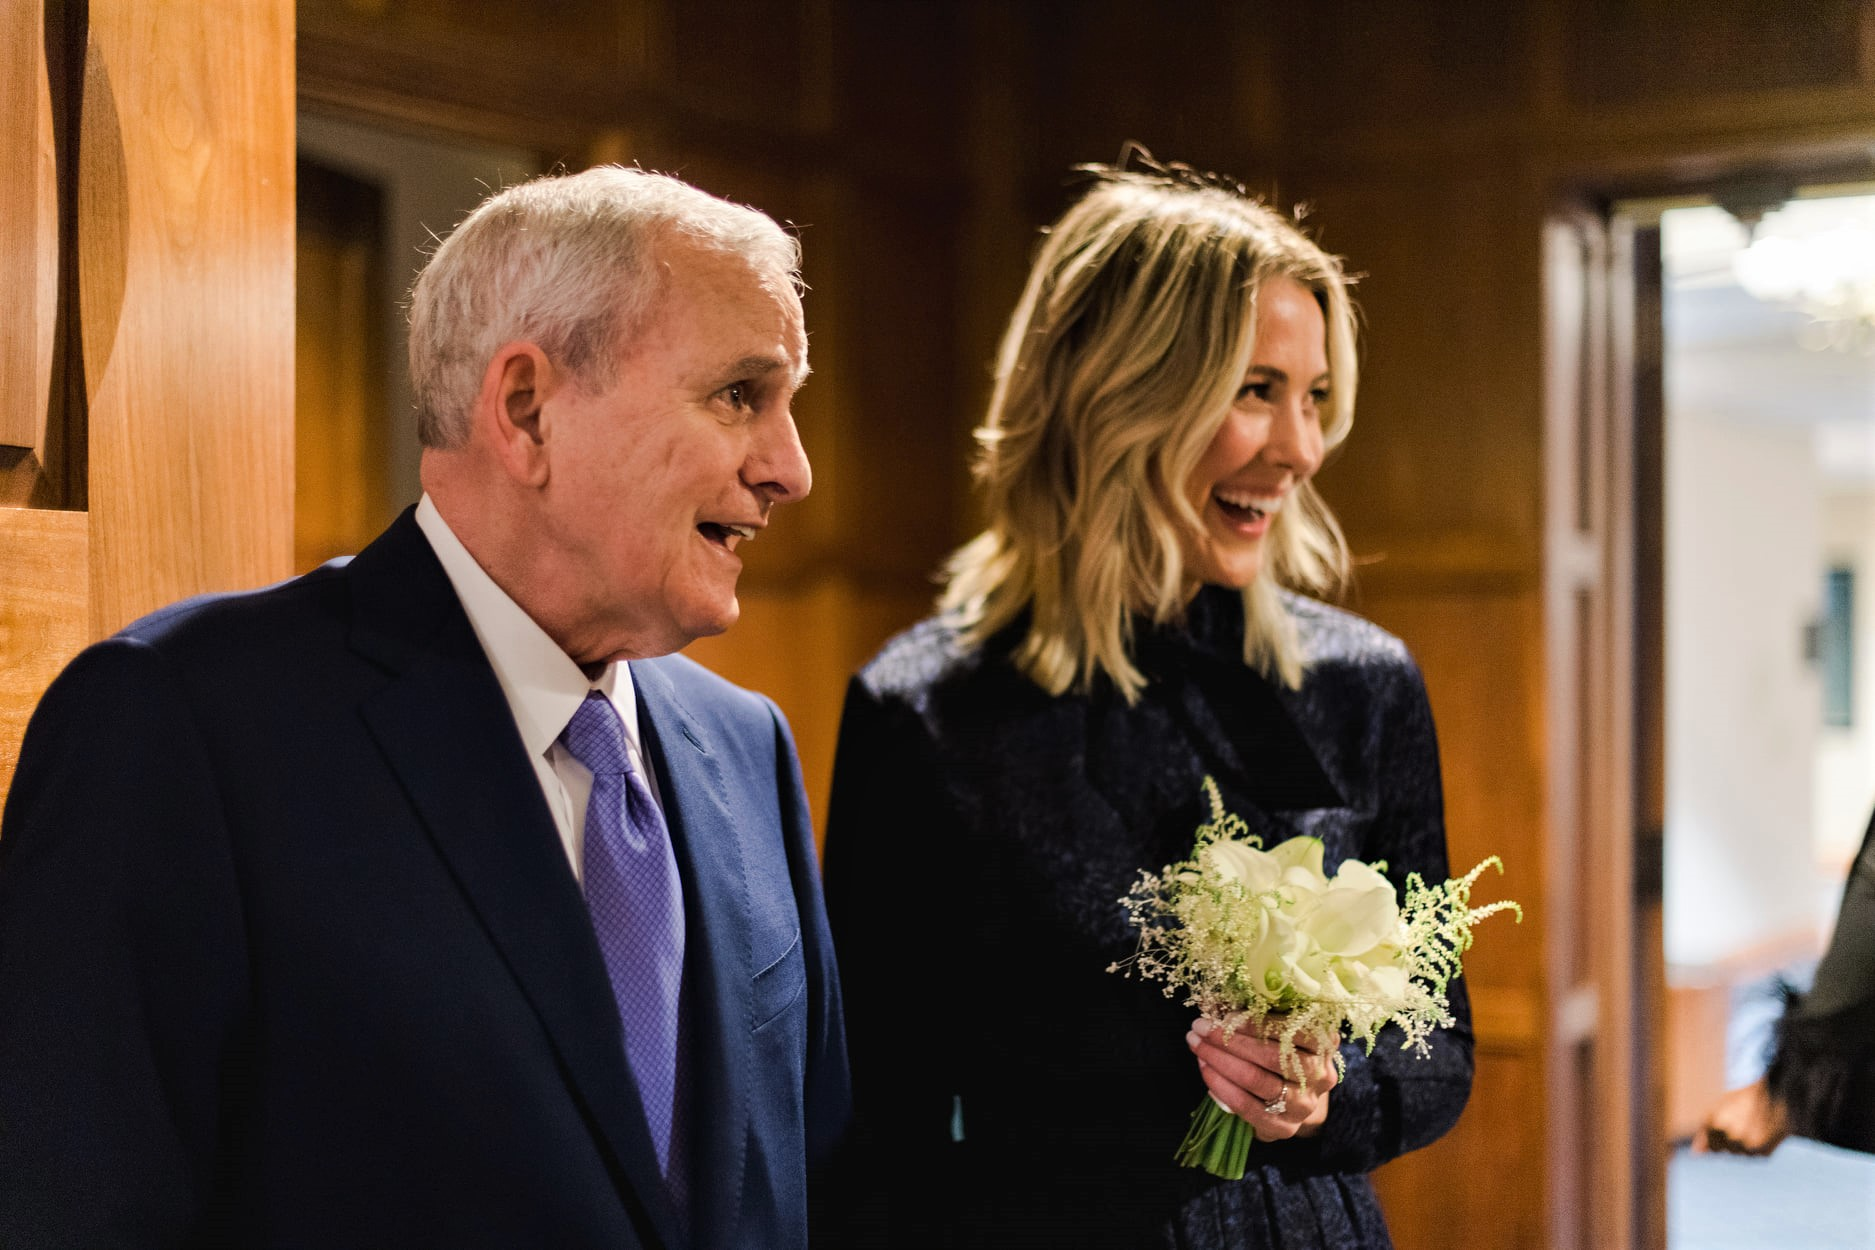 Mark Dayton Former Governor of Minnesota Announces his Marriage with Ana Orke at the Age of 73